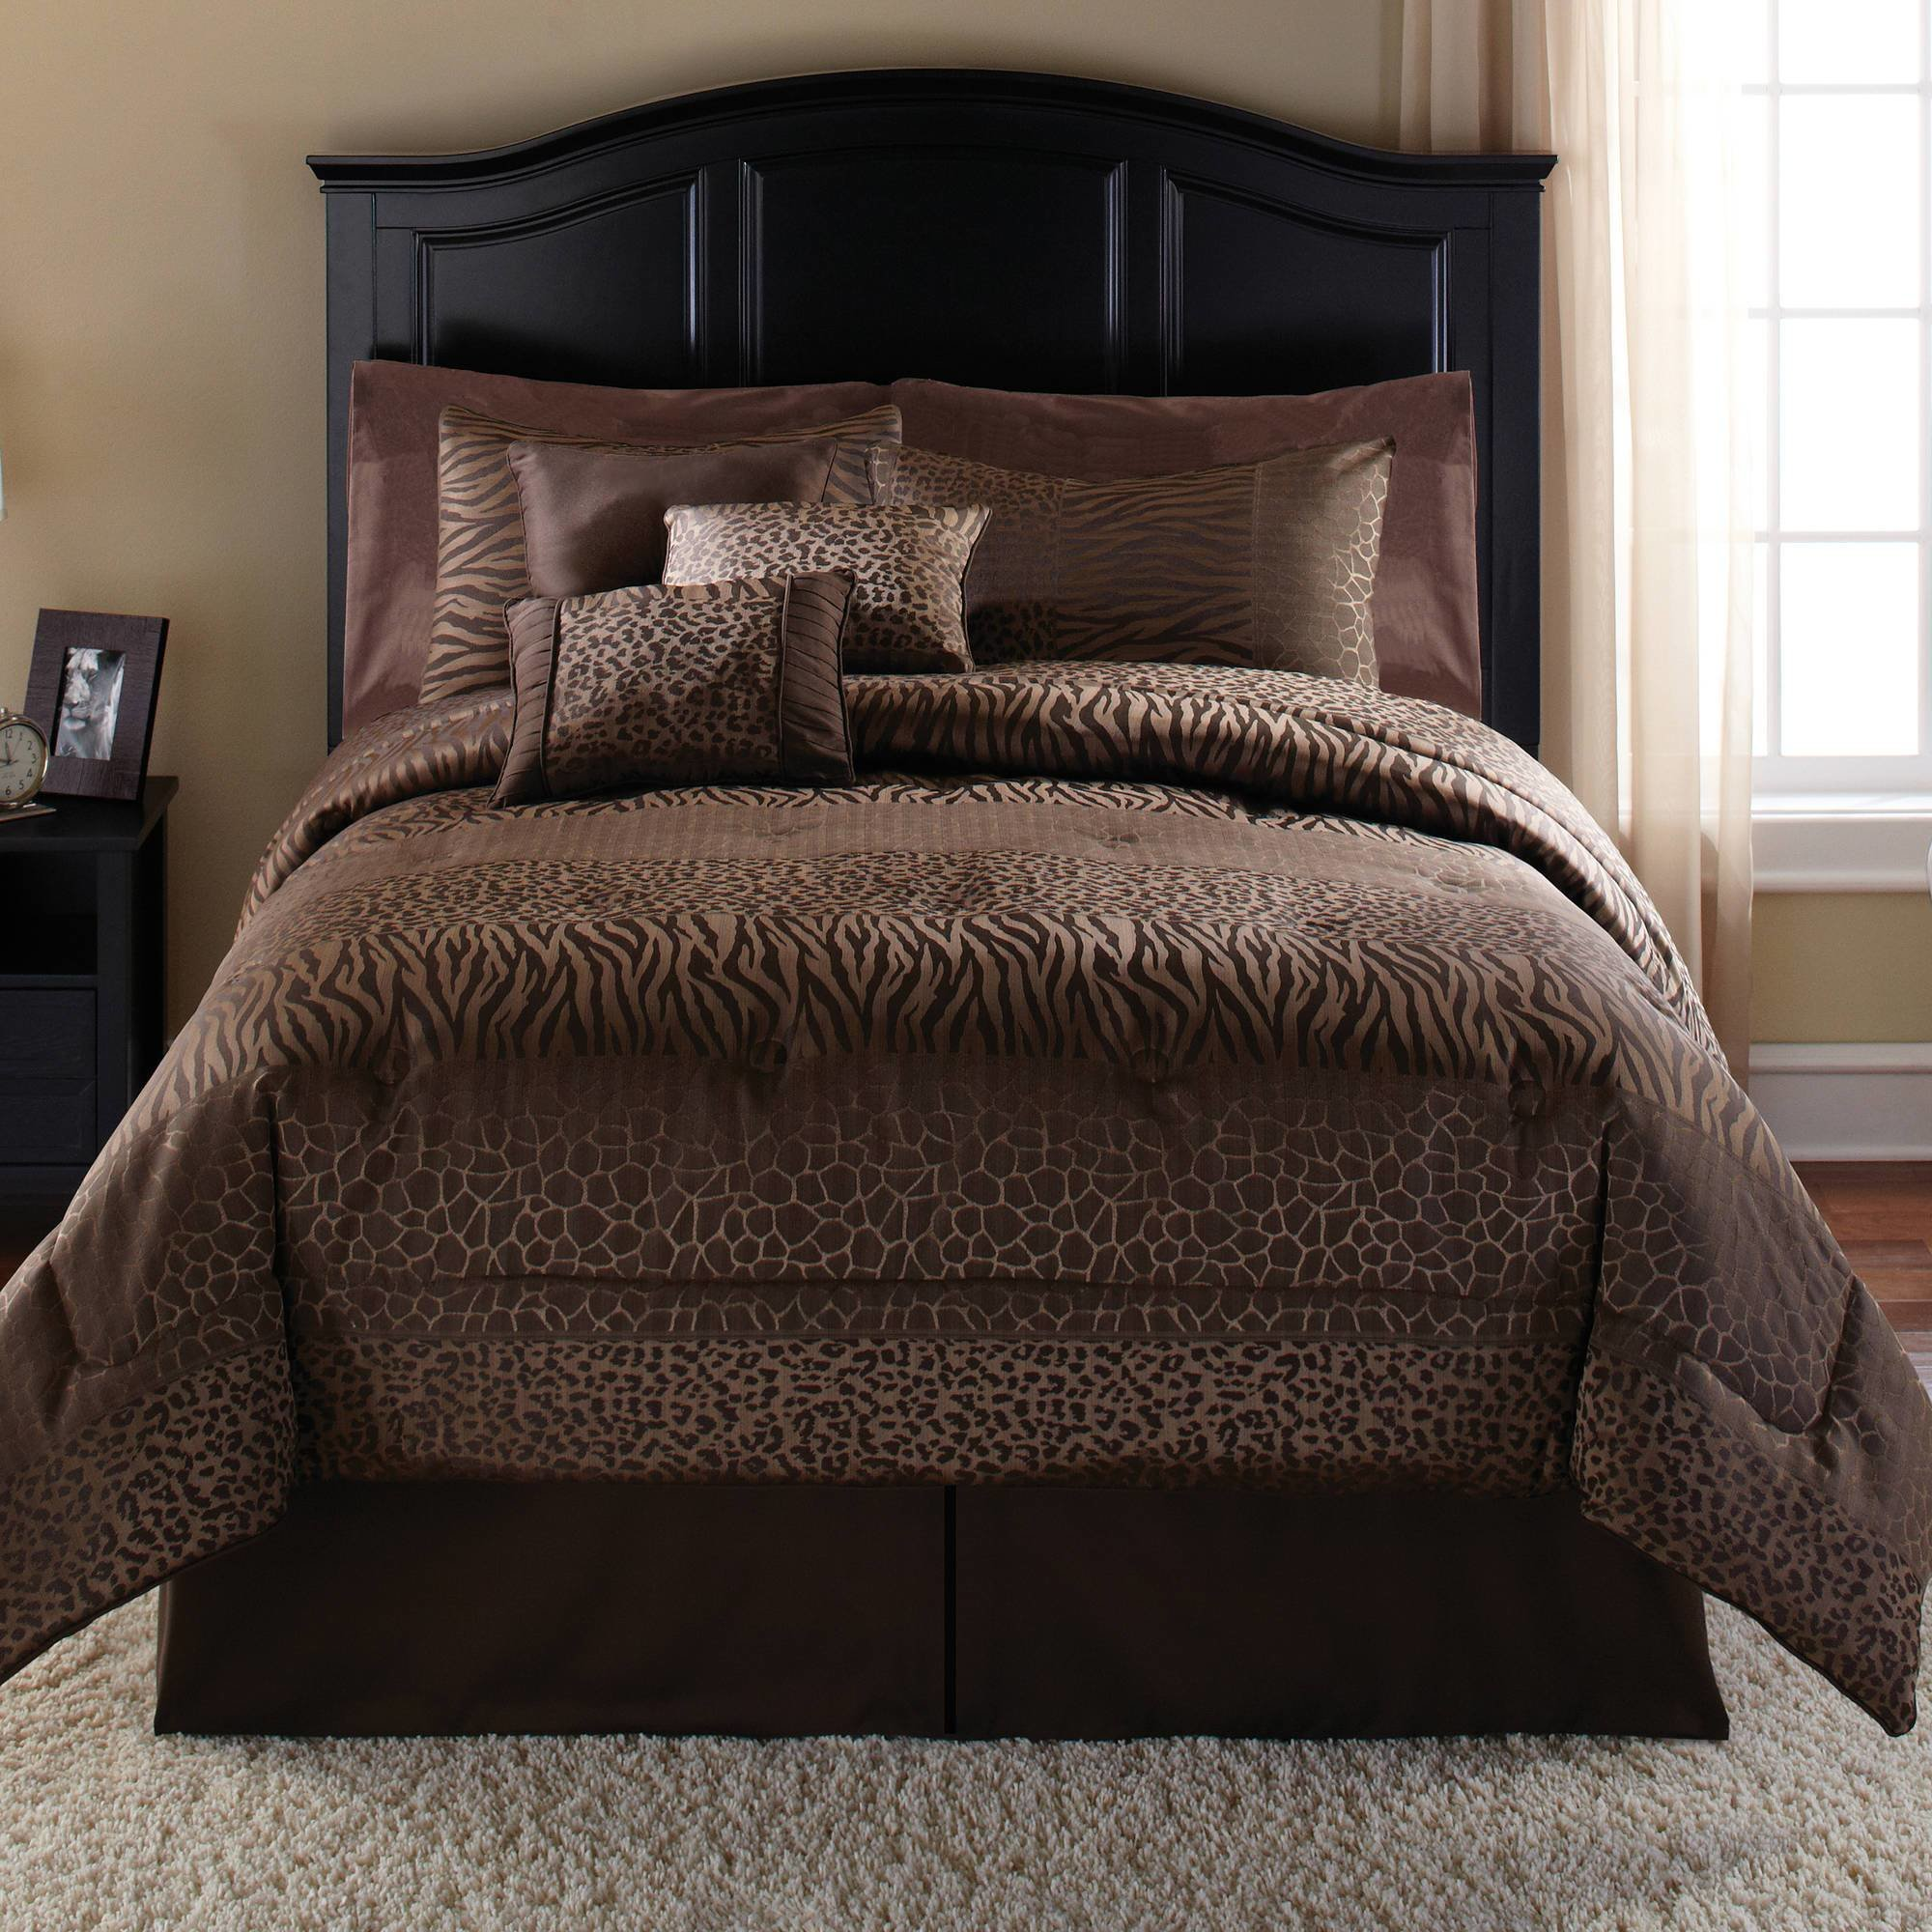 Best Mainstays Safari 7 Piece Bedding Comforter Set Walmart Com With Pictures